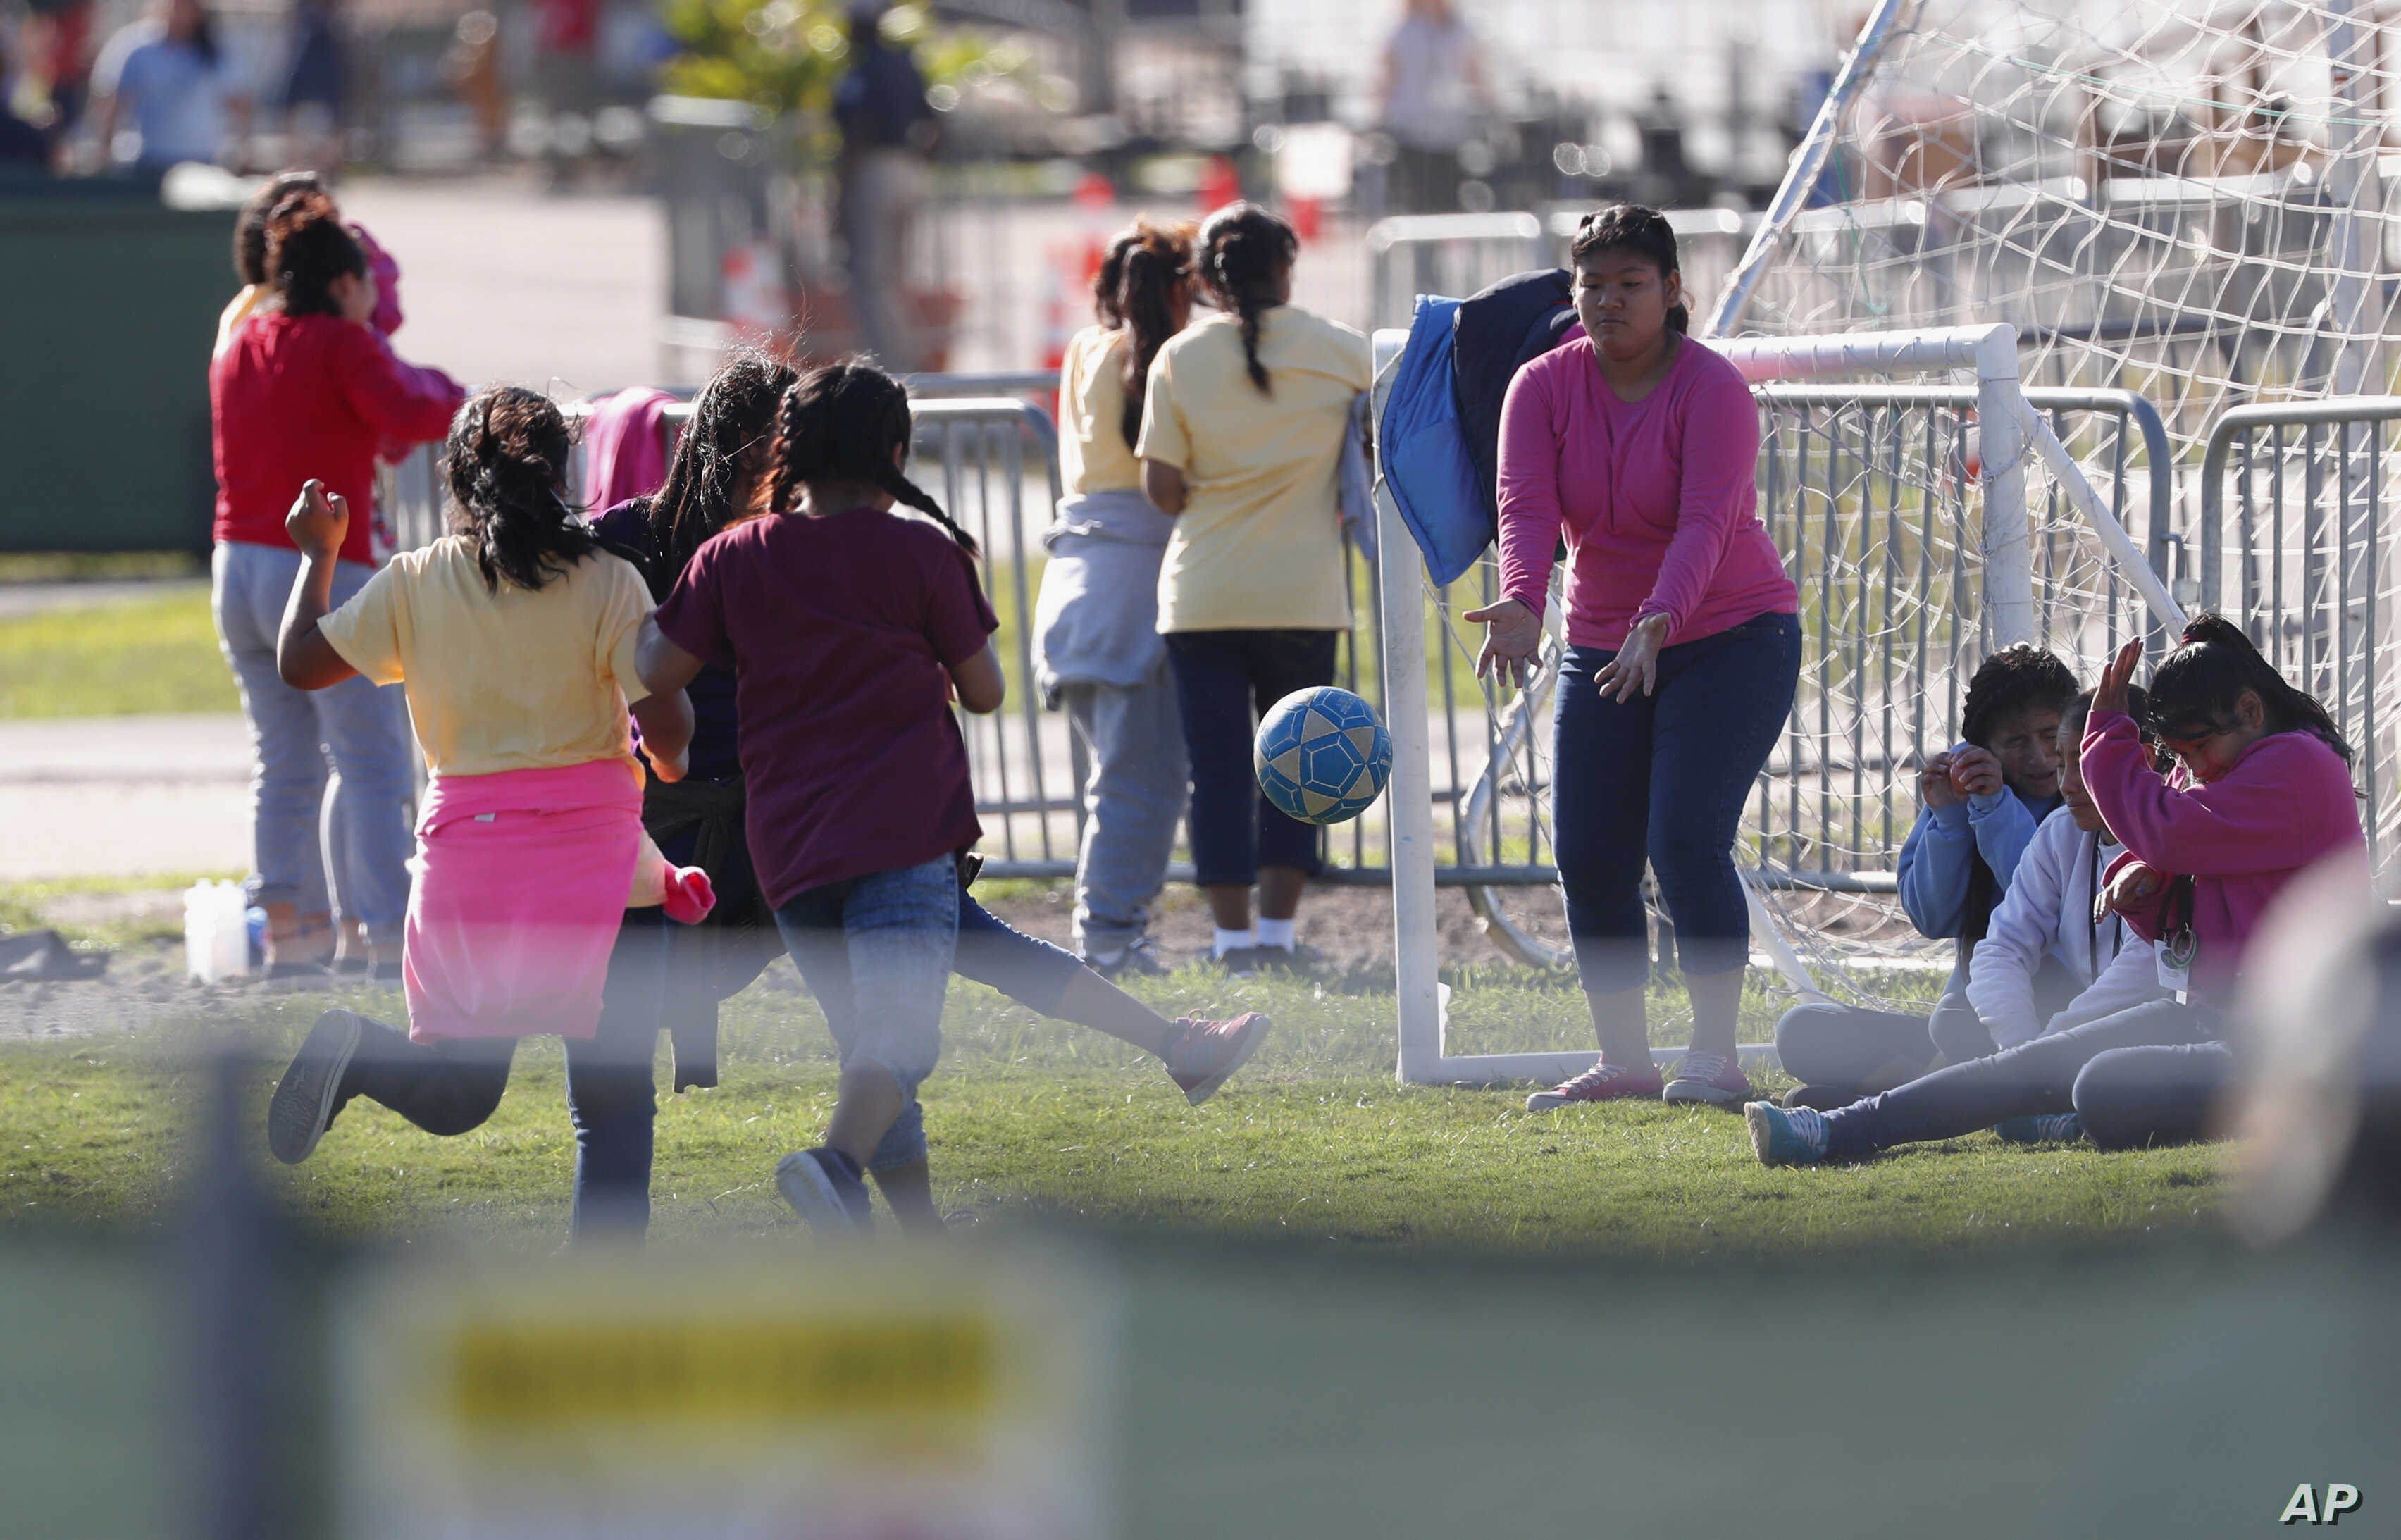 Girls play soccer at the Homestead Temporary Shelter for Unaccompanied Children in Homestead, Fla., Feb. 19, 2019.